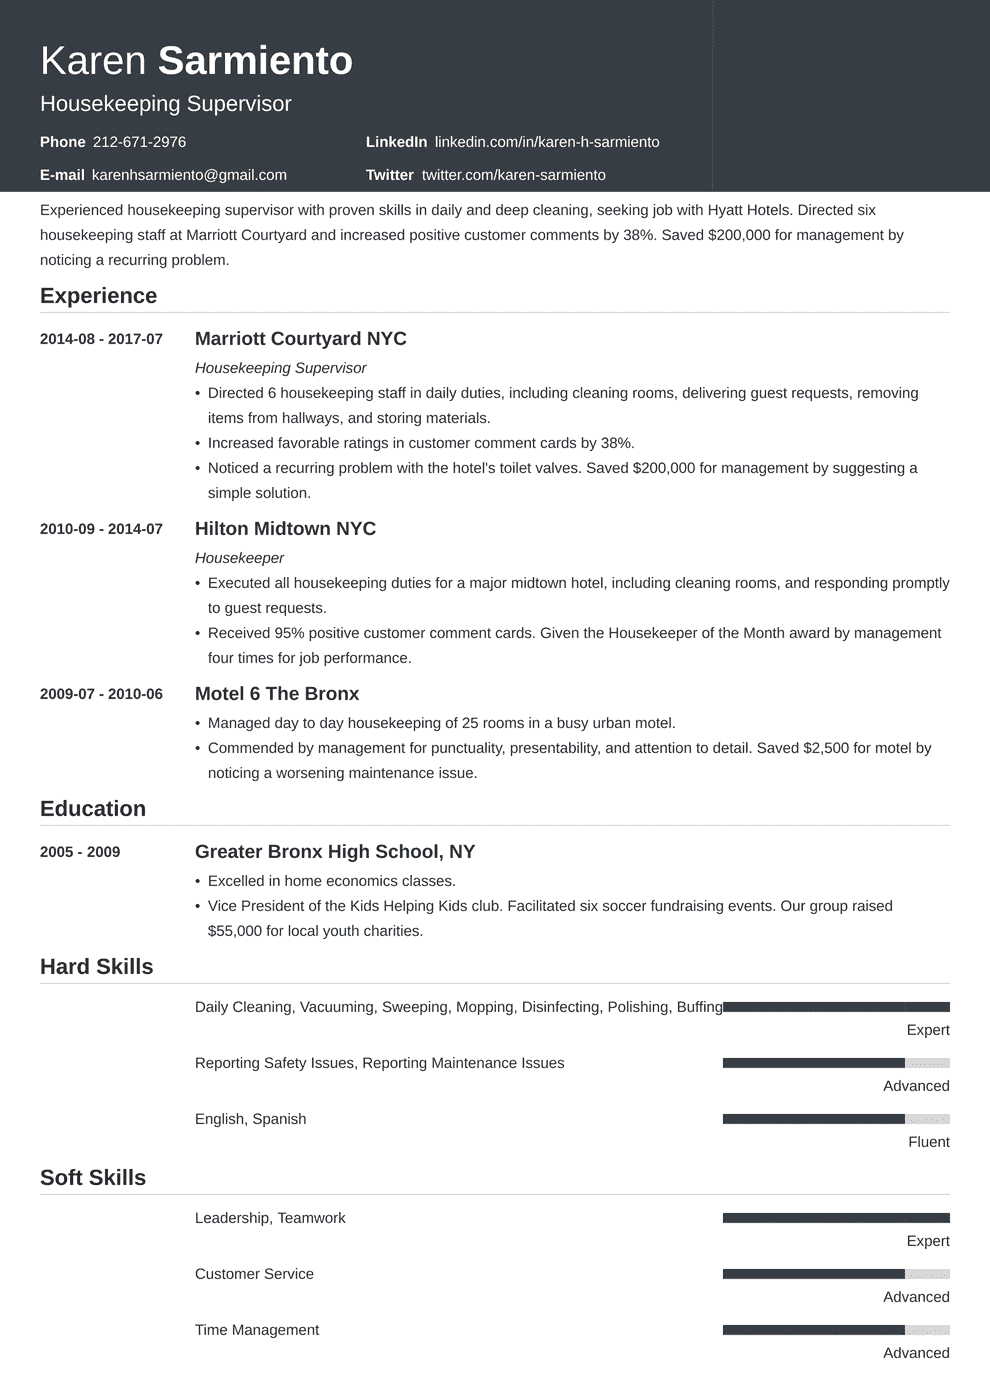 Housekeeping Resume: Sample & Complete Guide [+20 Examples]